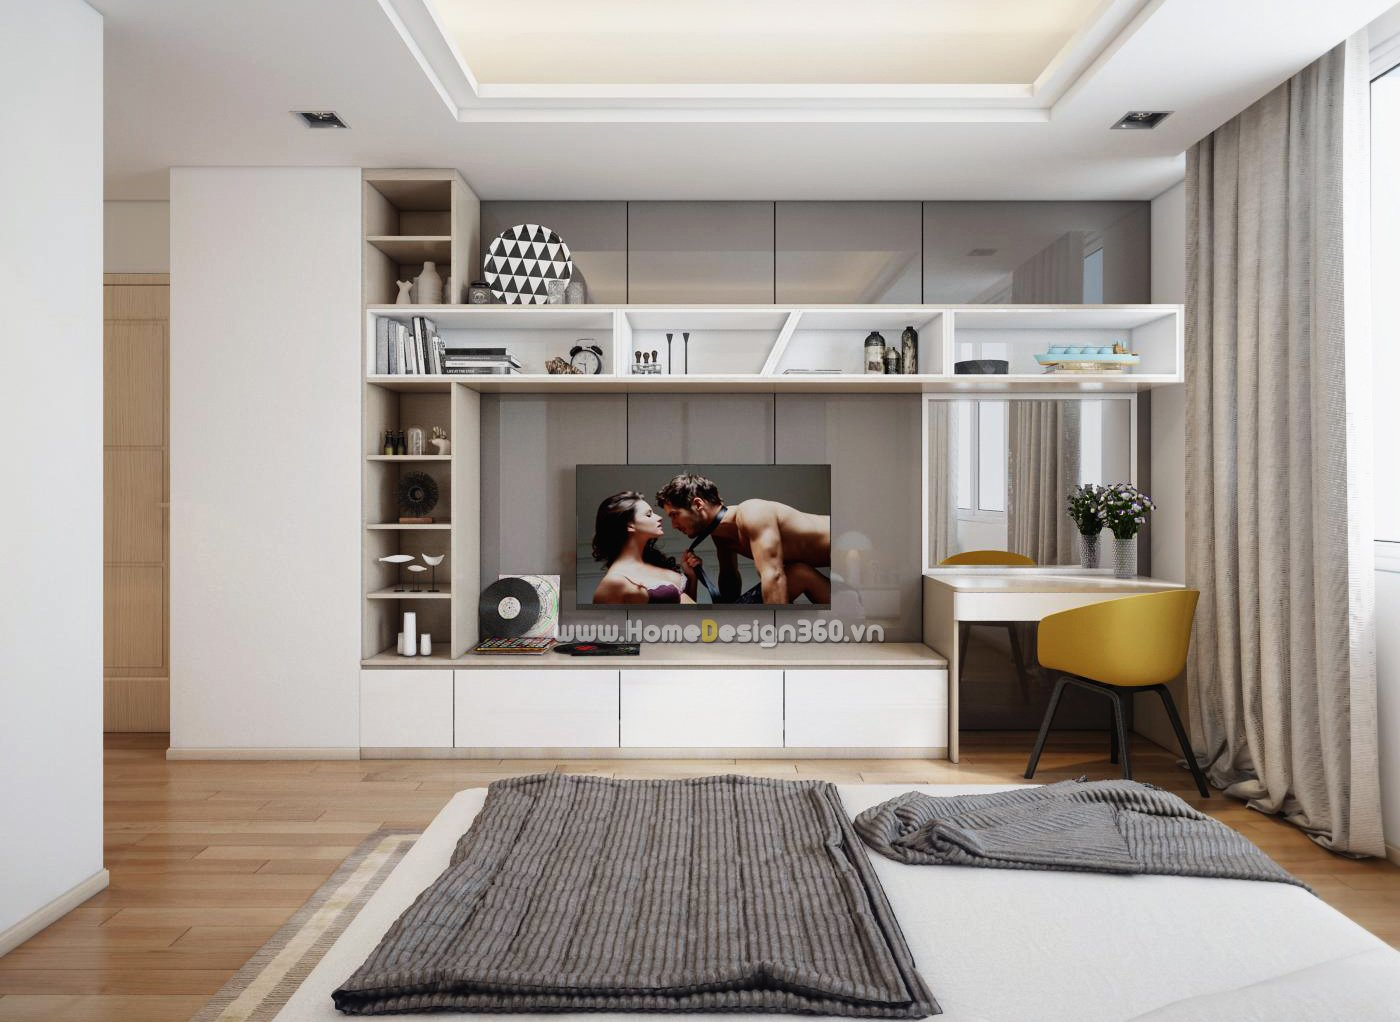 Posh Apartment Interiors - Posh bedroom designs